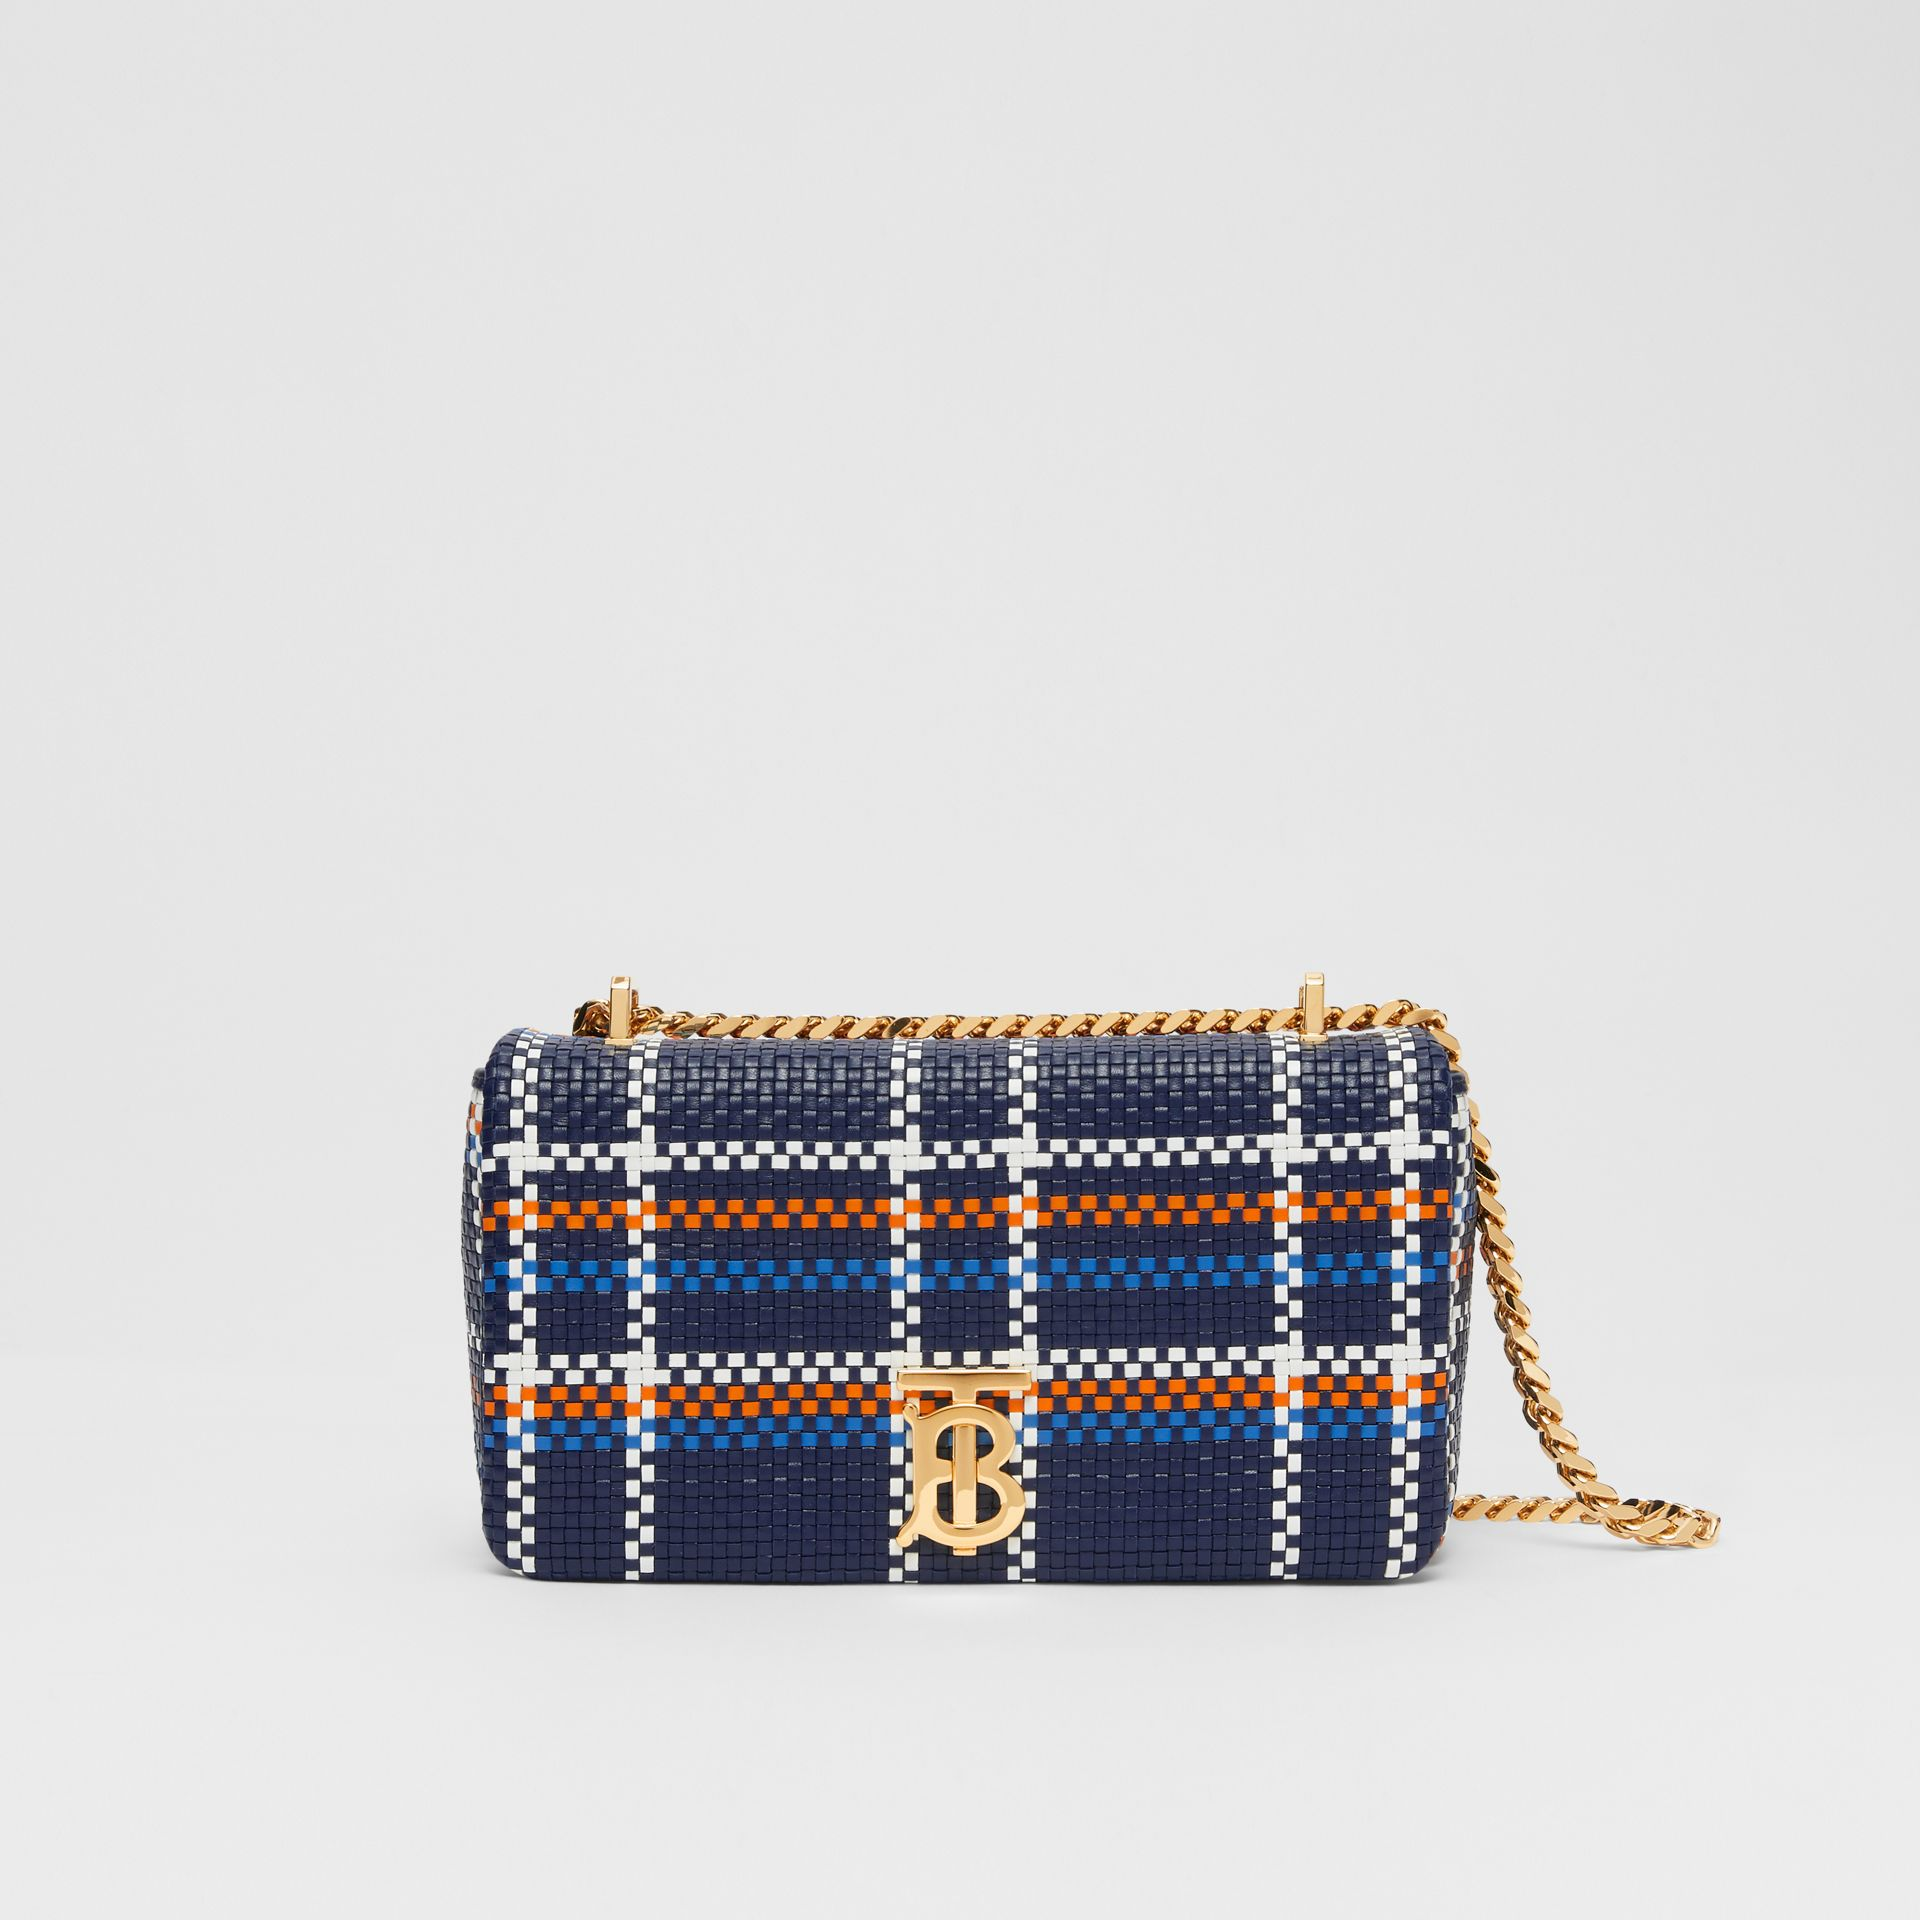 Small Latticed Leather Lola Bag in Blue/white/orange - Women | Burberry Canada - gallery image 0